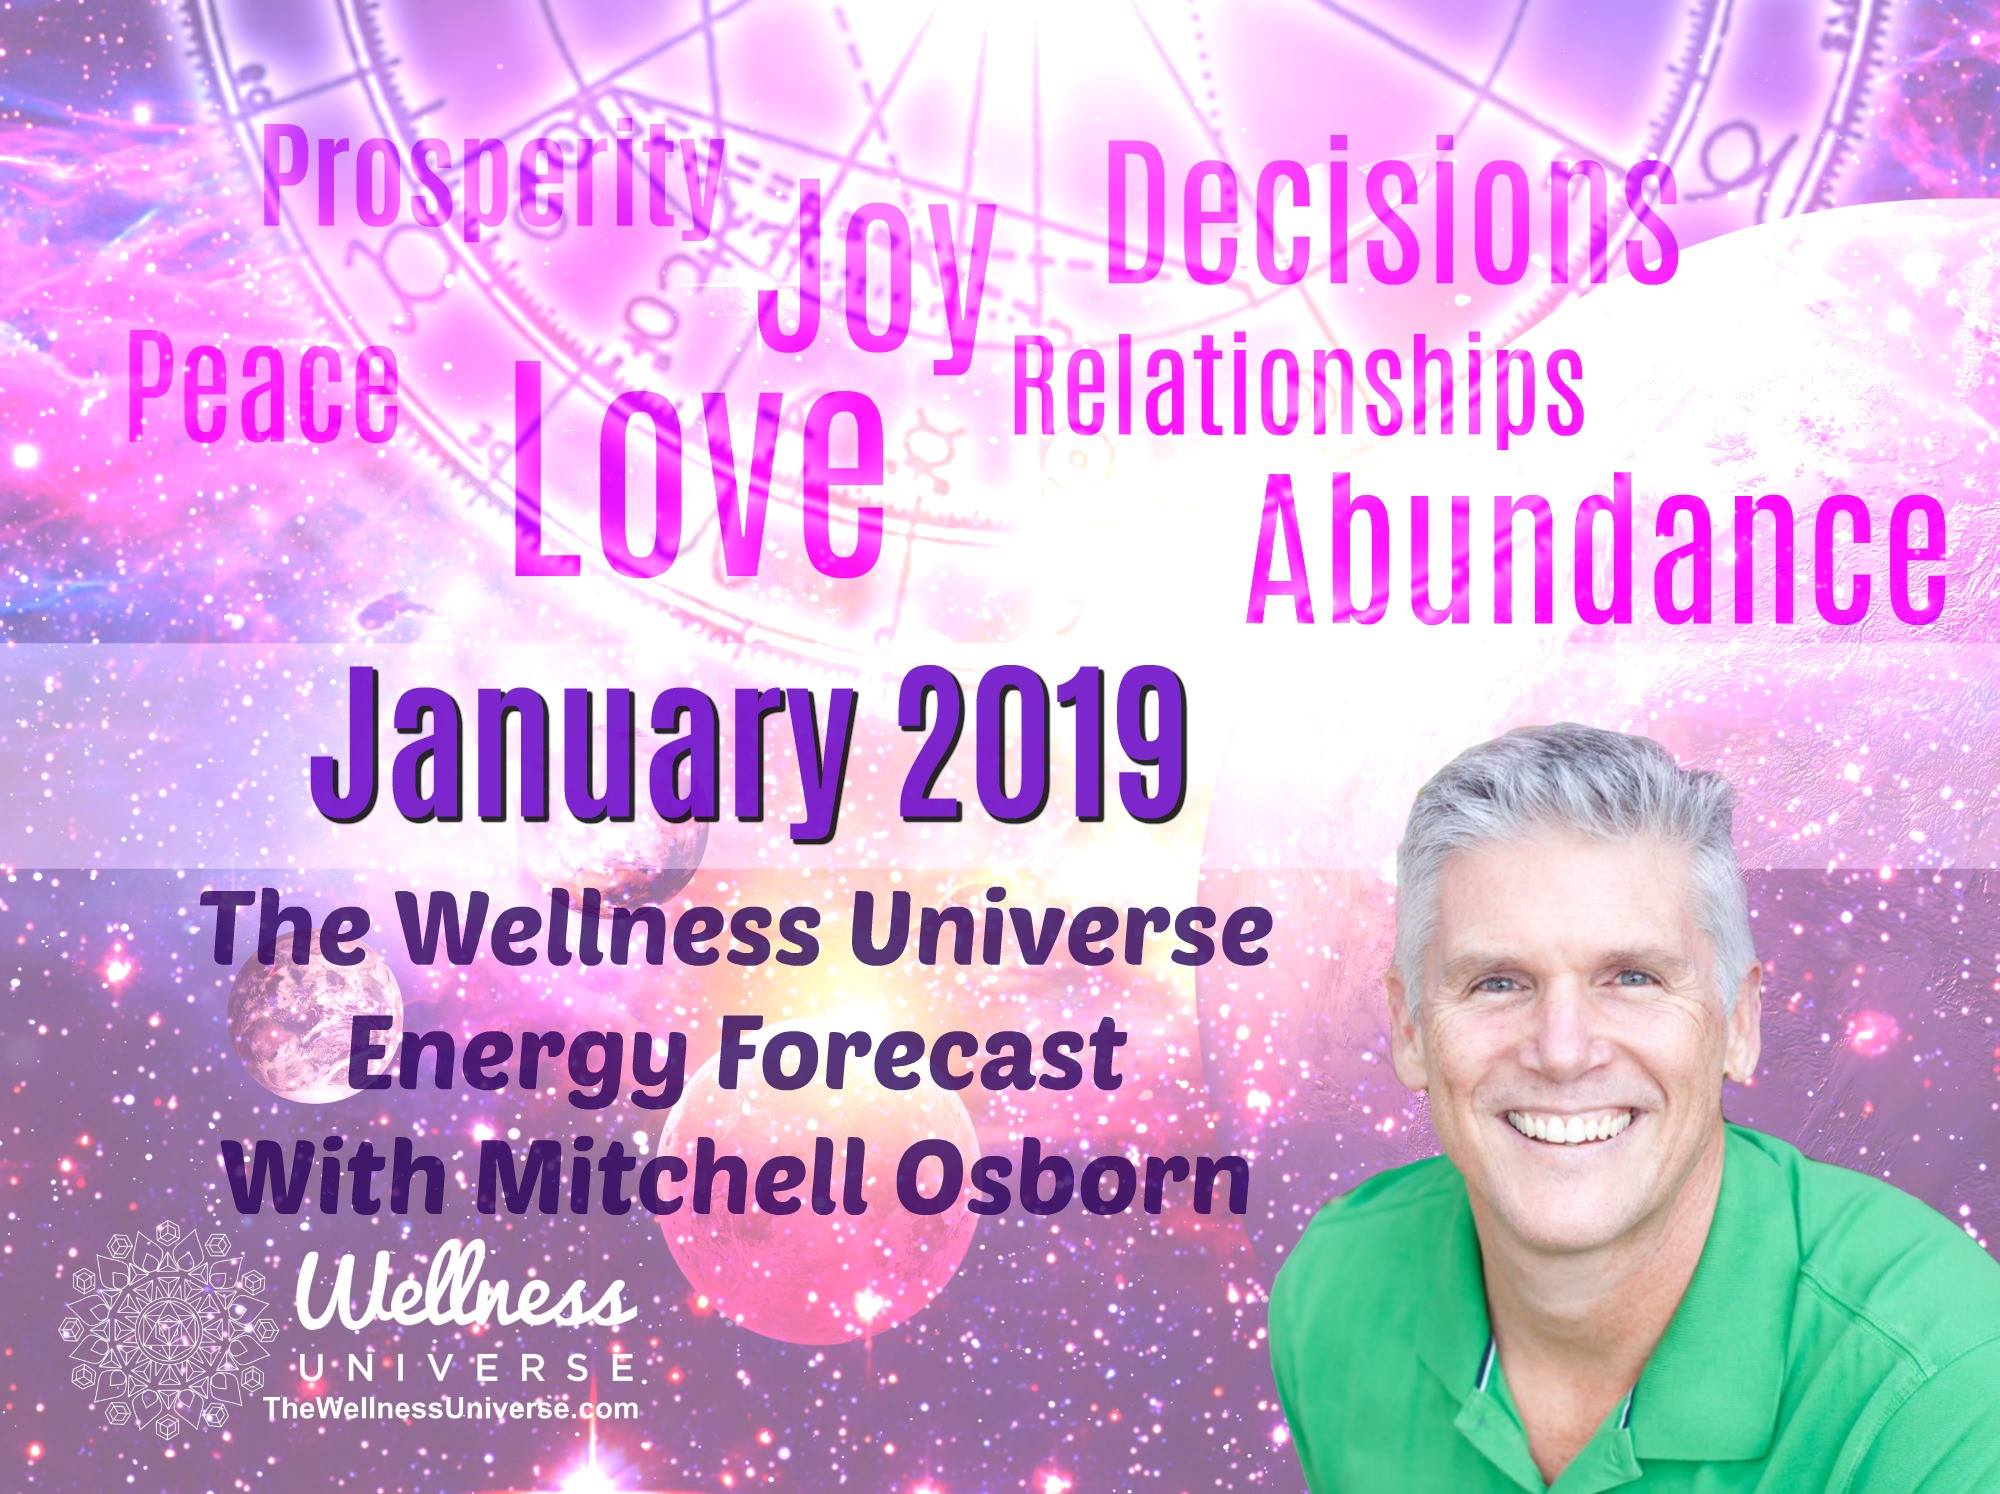 Energy Forecast for January 2019 with Mitchell Osborn #TheWellnessUniverse #WUVIP #ForecastForJanuary2019